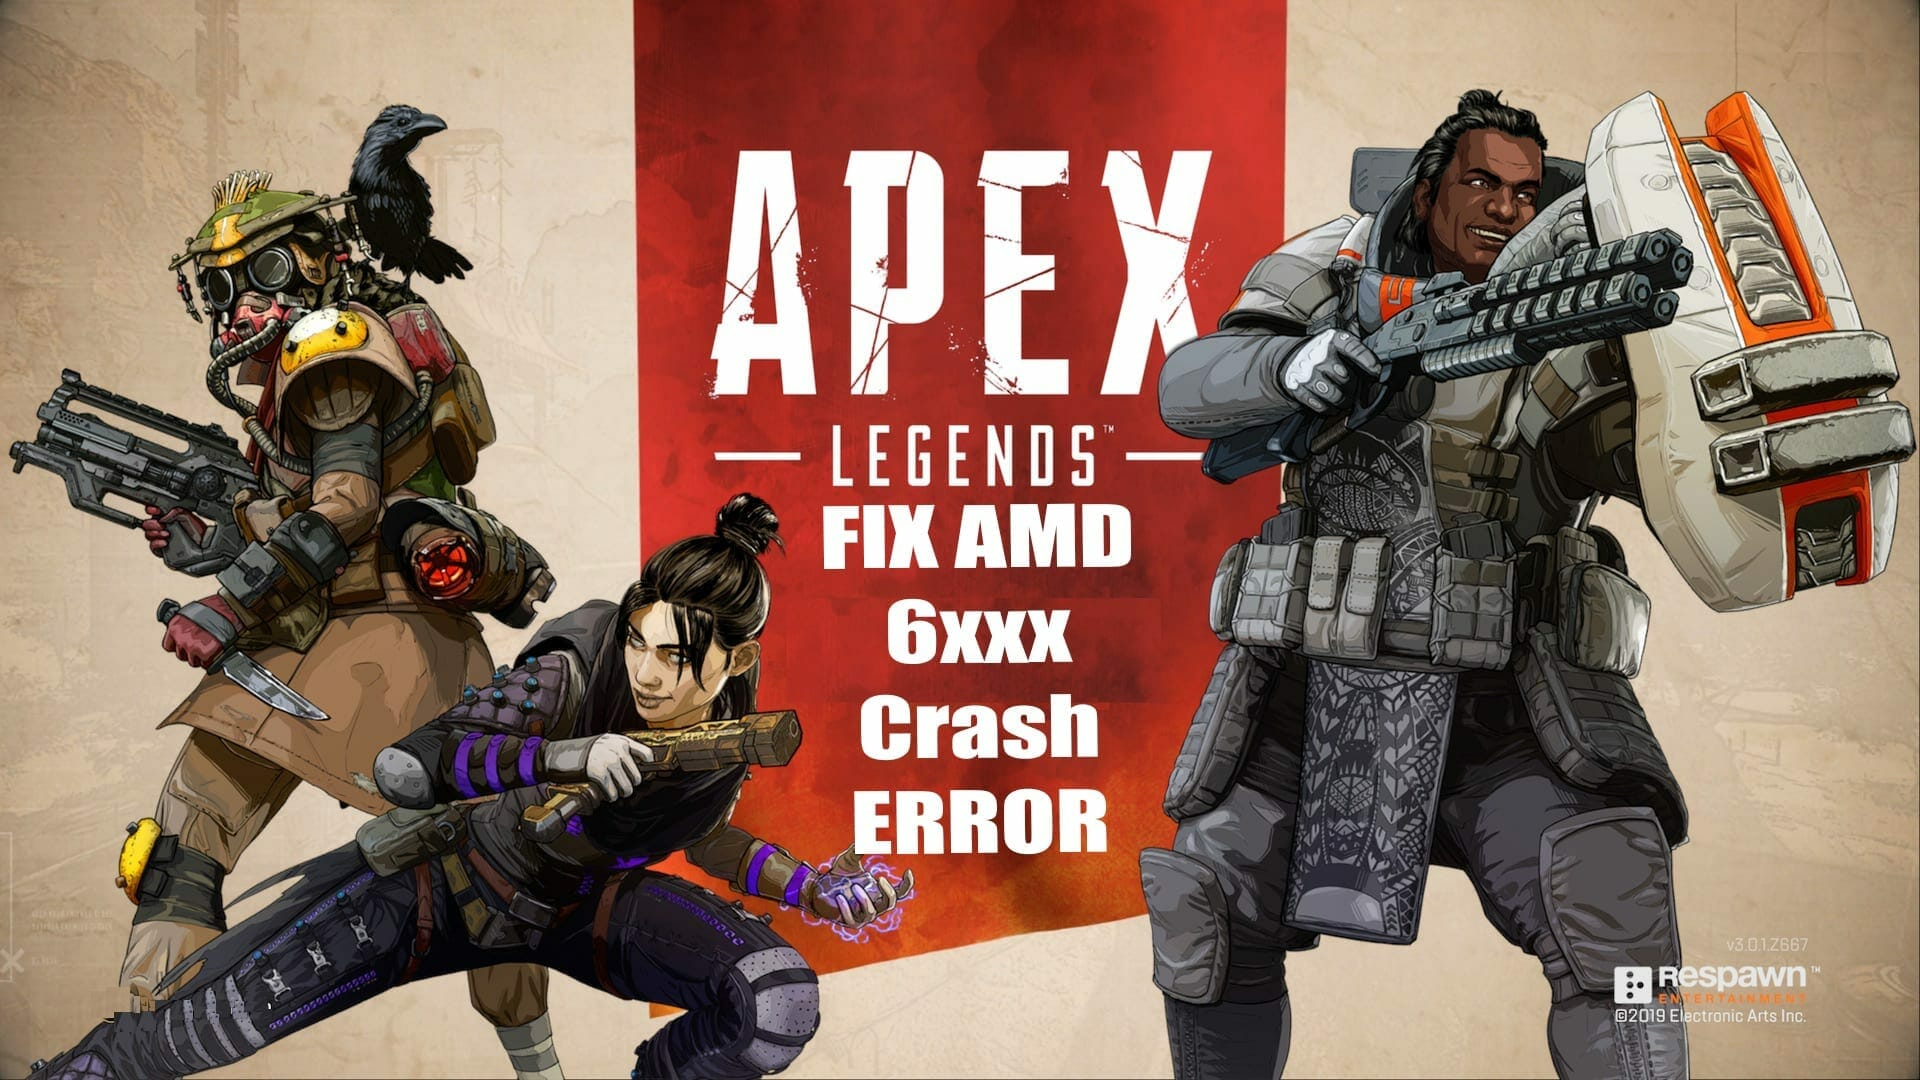 Free Apex Legends content for Twitch Prime members leaked